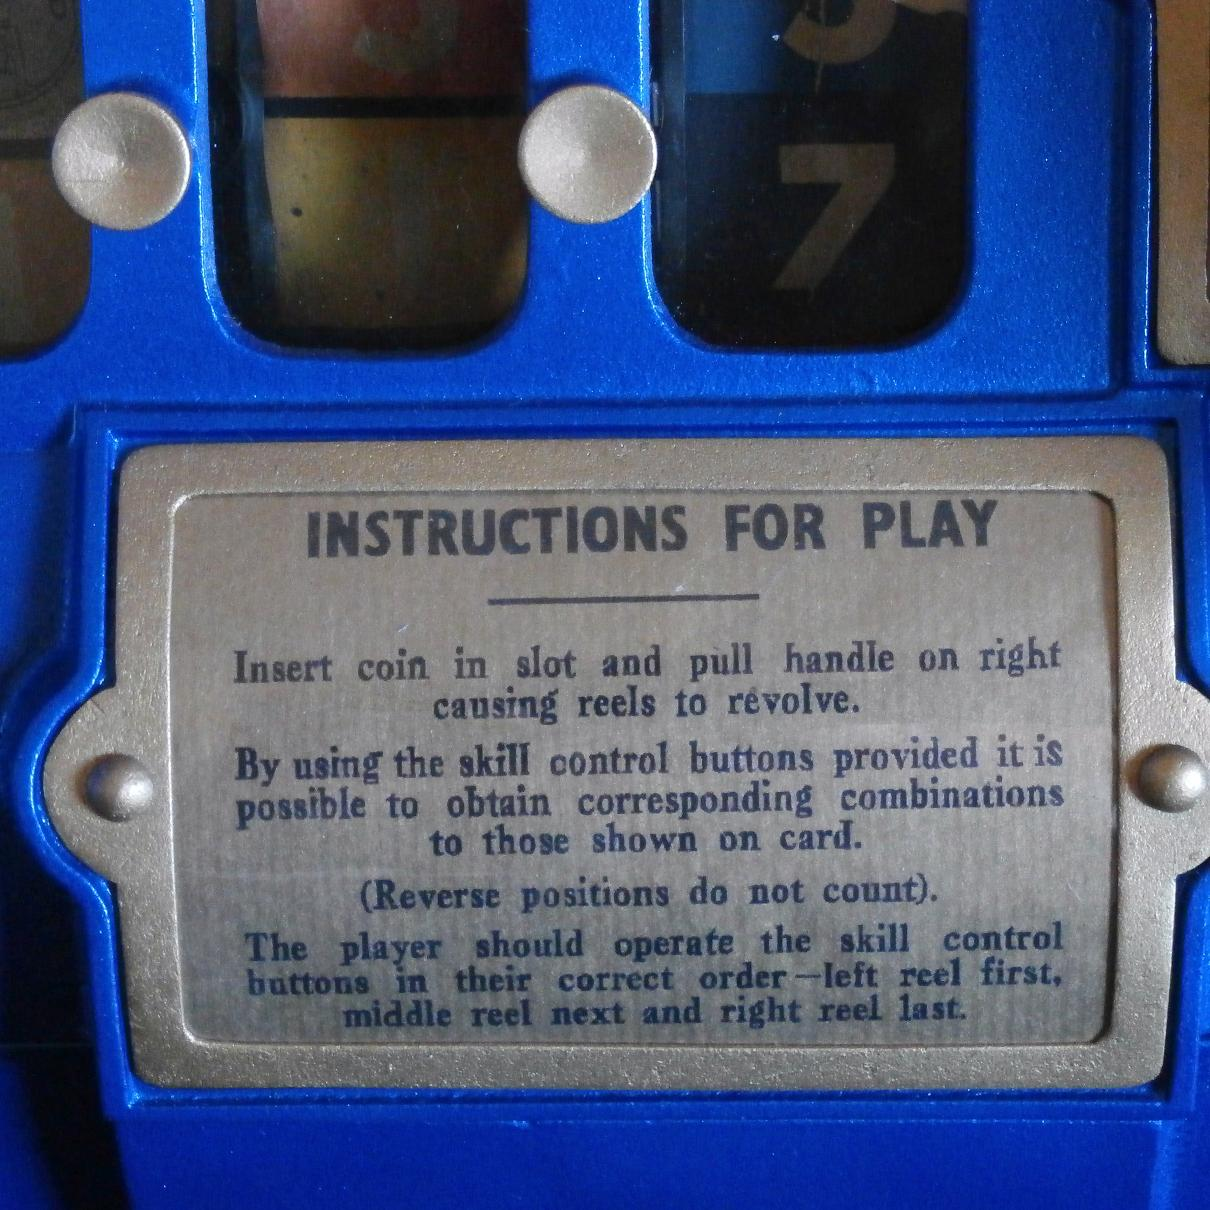 extraordinary instructions for play sign.JPG